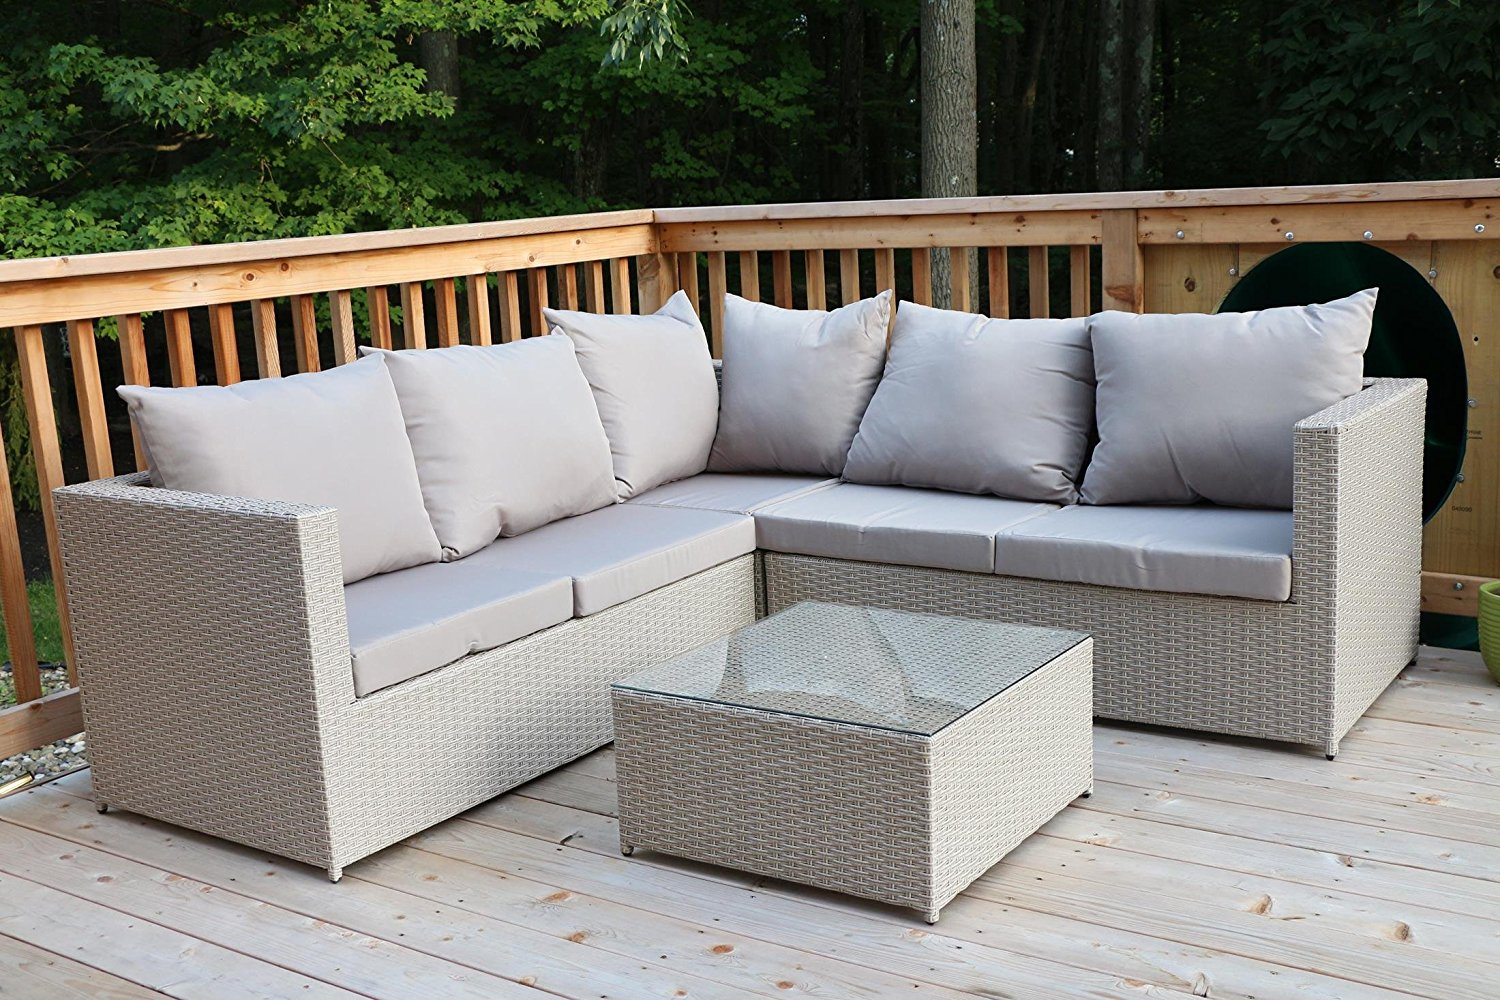 large 4 pc modern beige rattan wiker sectional sofa set outdoor patio furniture fully. Black Bedroom Furniture Sets. Home Design Ideas